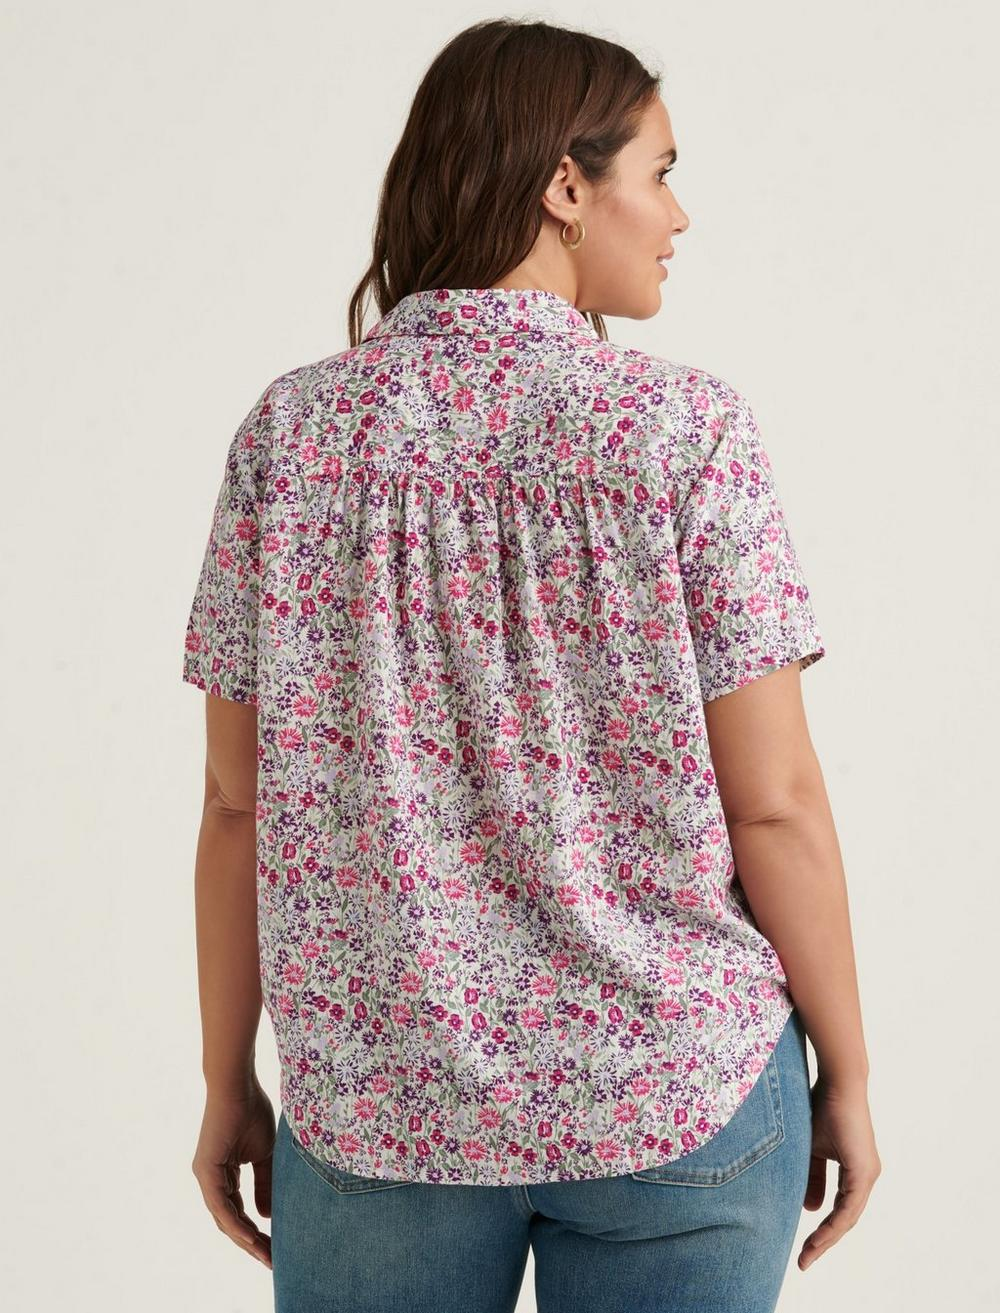 TIE FRONT SHIRT, image 6